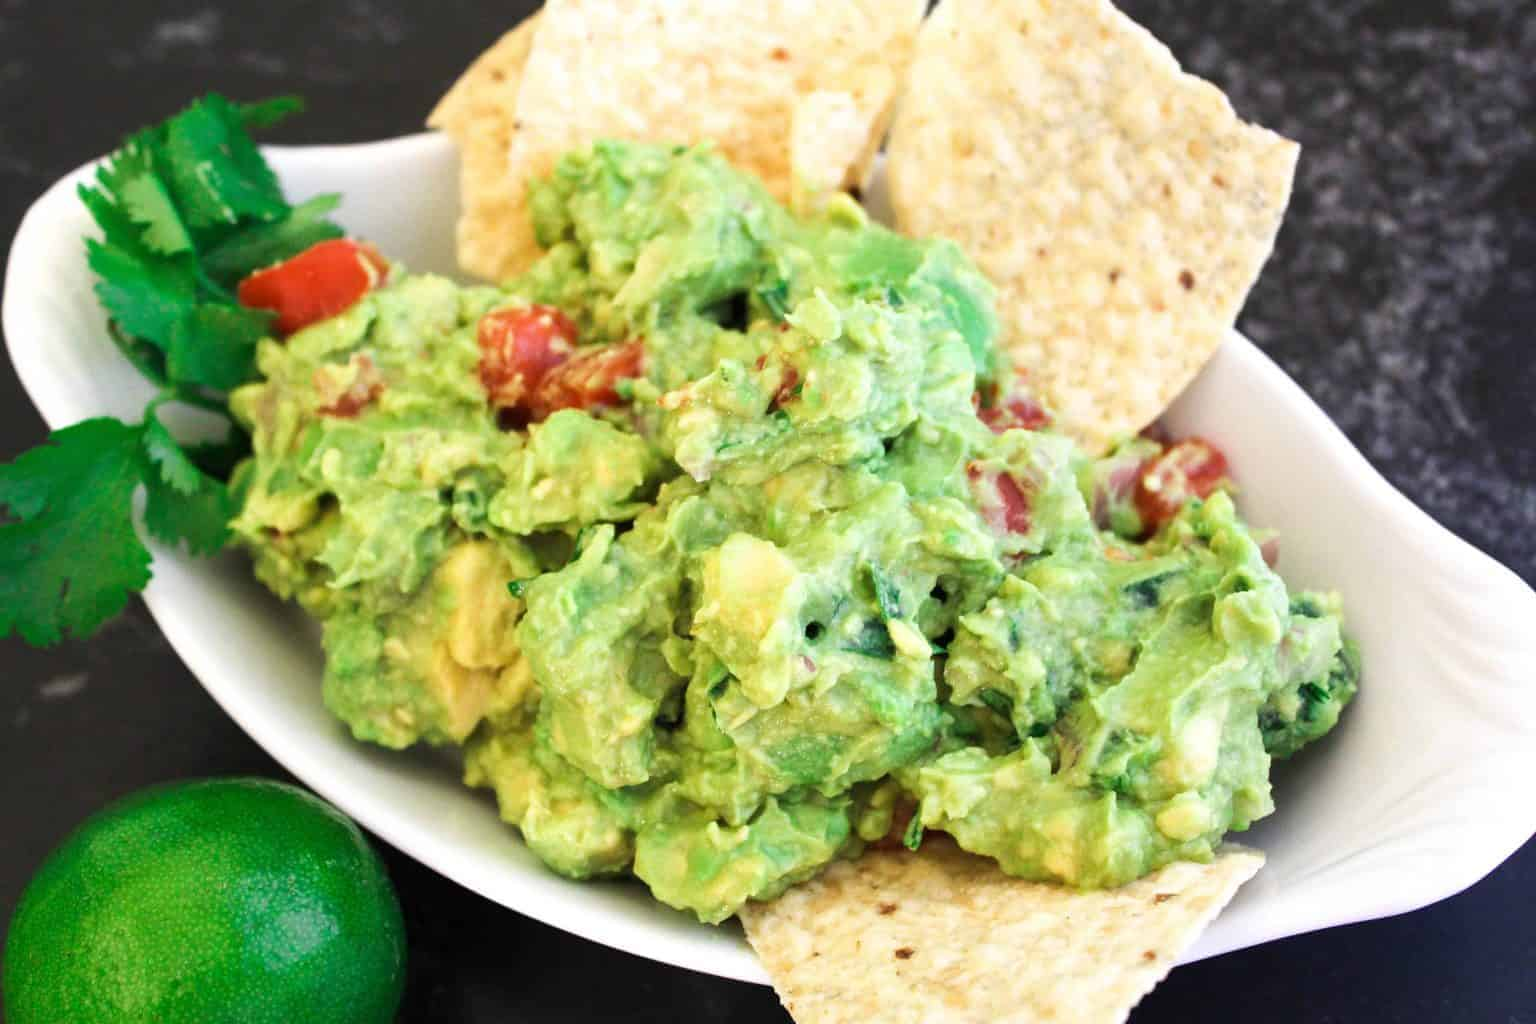 Close up image of guacamole with tortilla chips